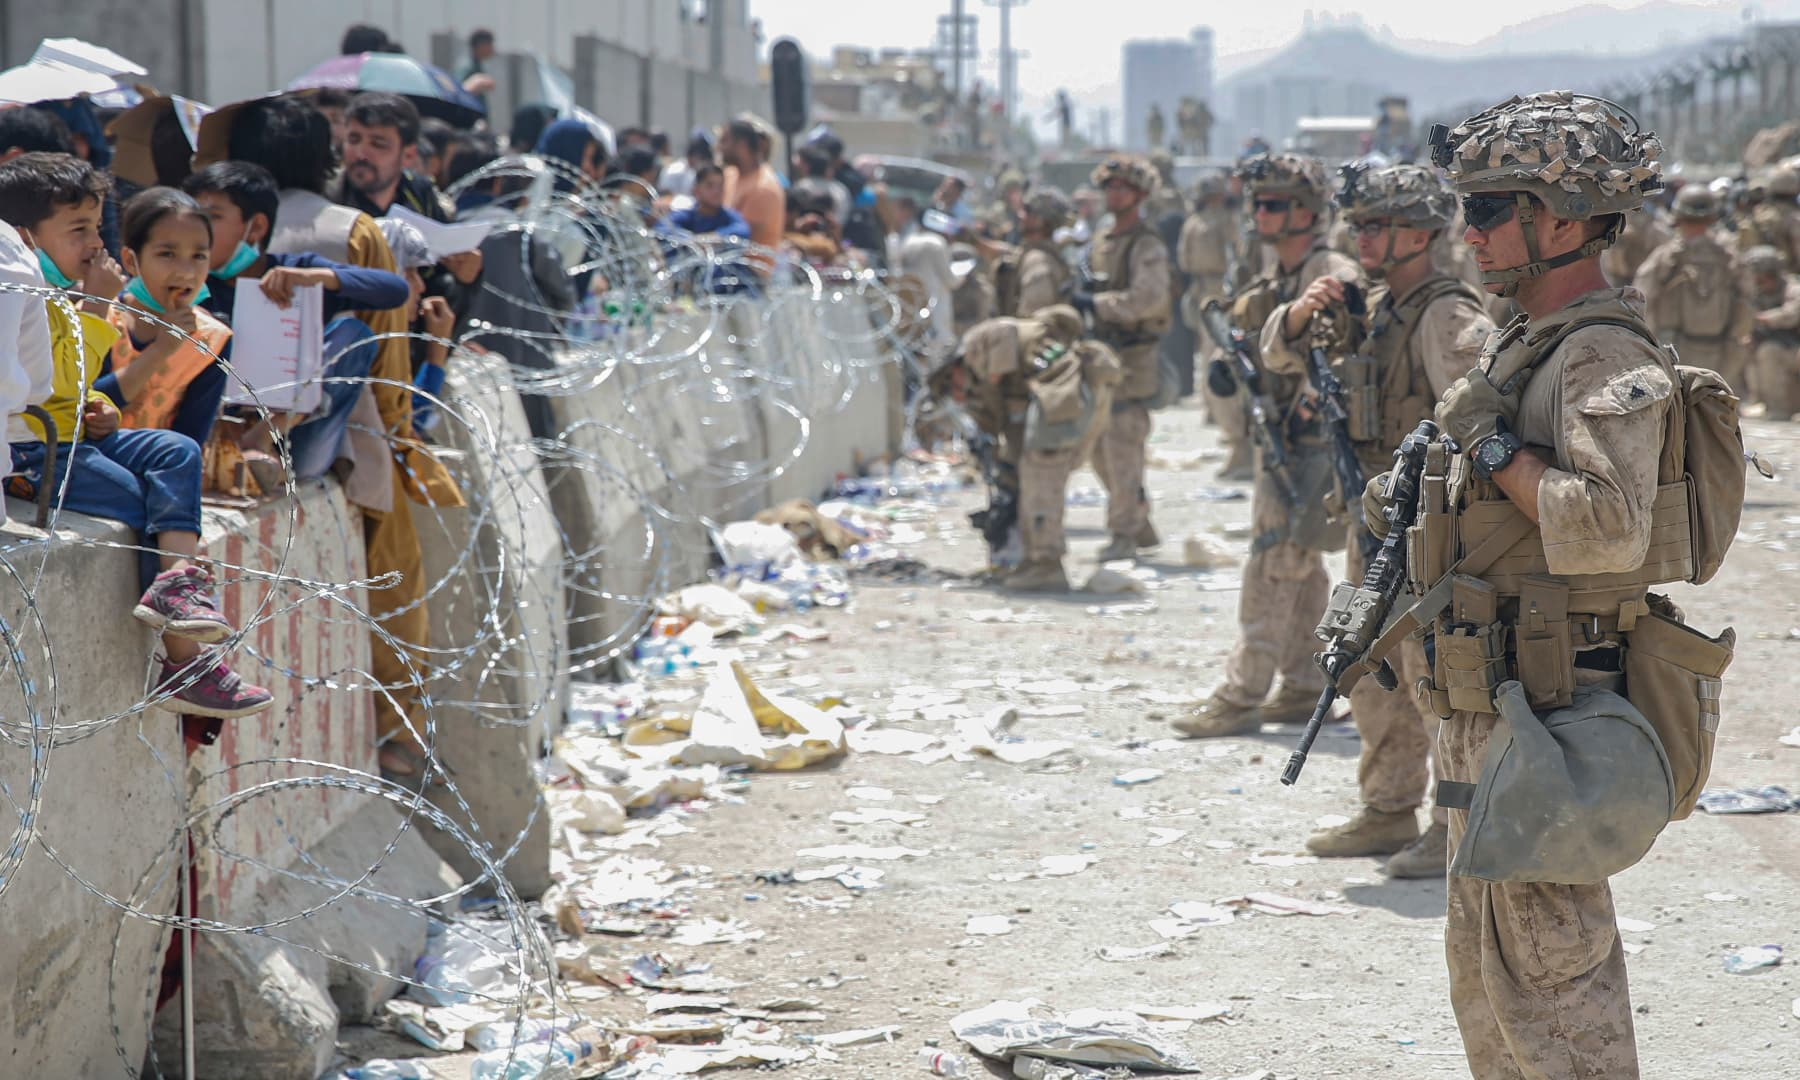 US Marines with Special Purpose Marine Air-Ground Task Force - Crisis Response - Central Command, provide assistance during an evacuation at Hamid Karzai International Airport in Kabul, Afghanistan on August 20, 2021. — AP